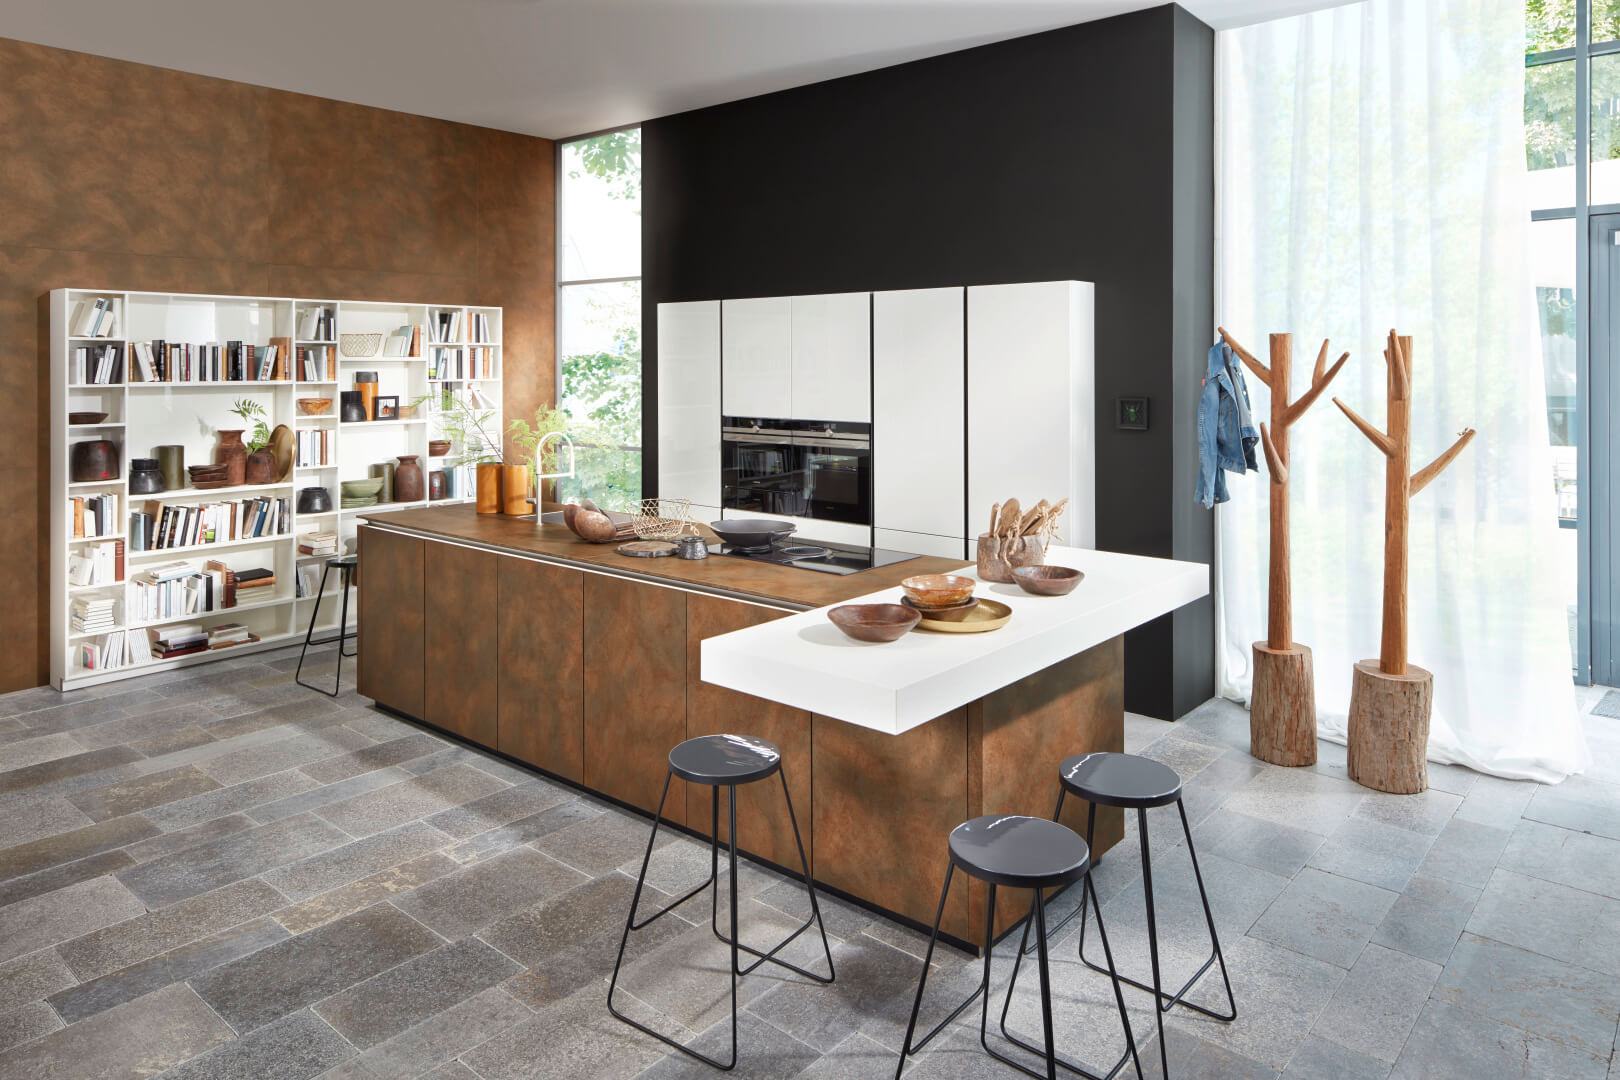 Nolte-Kitchens-Ferro-Gallery5